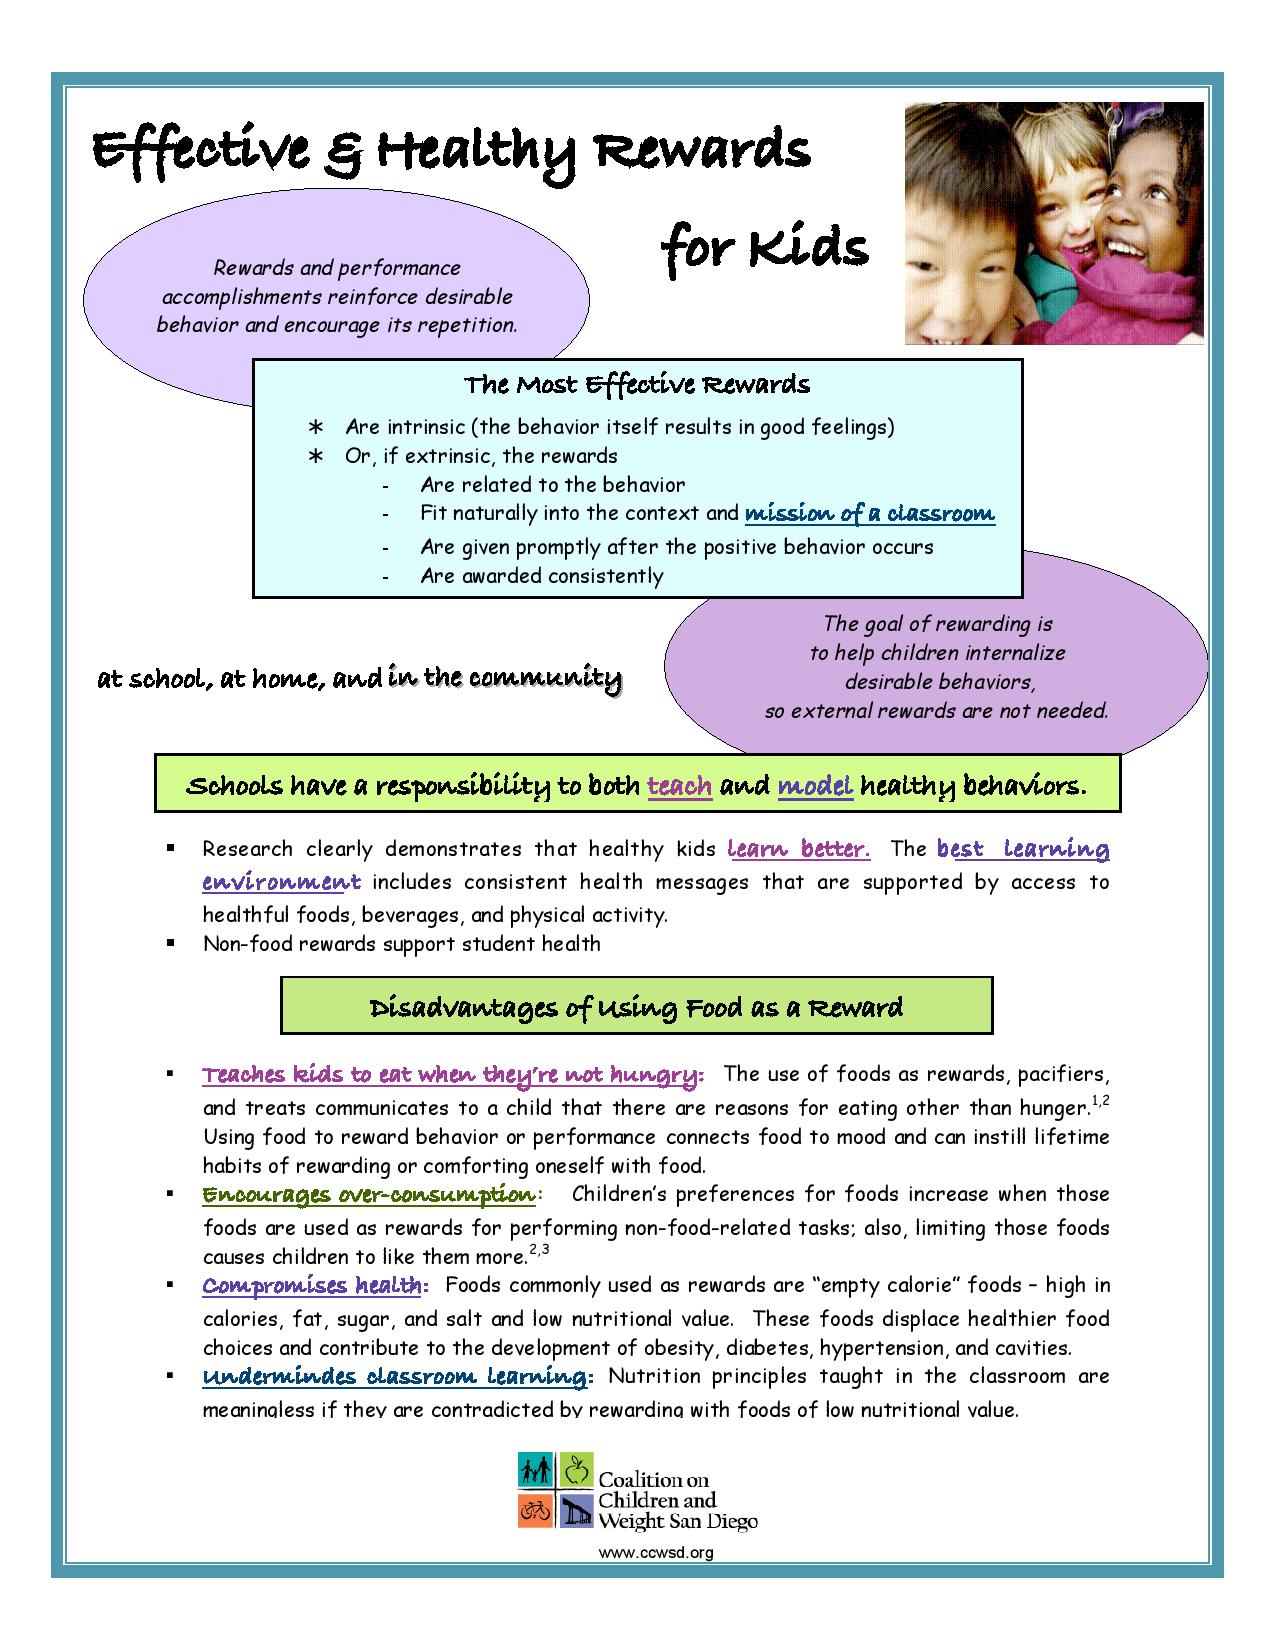 Effective And Healthy Rewards For Kids Hawaii 5210